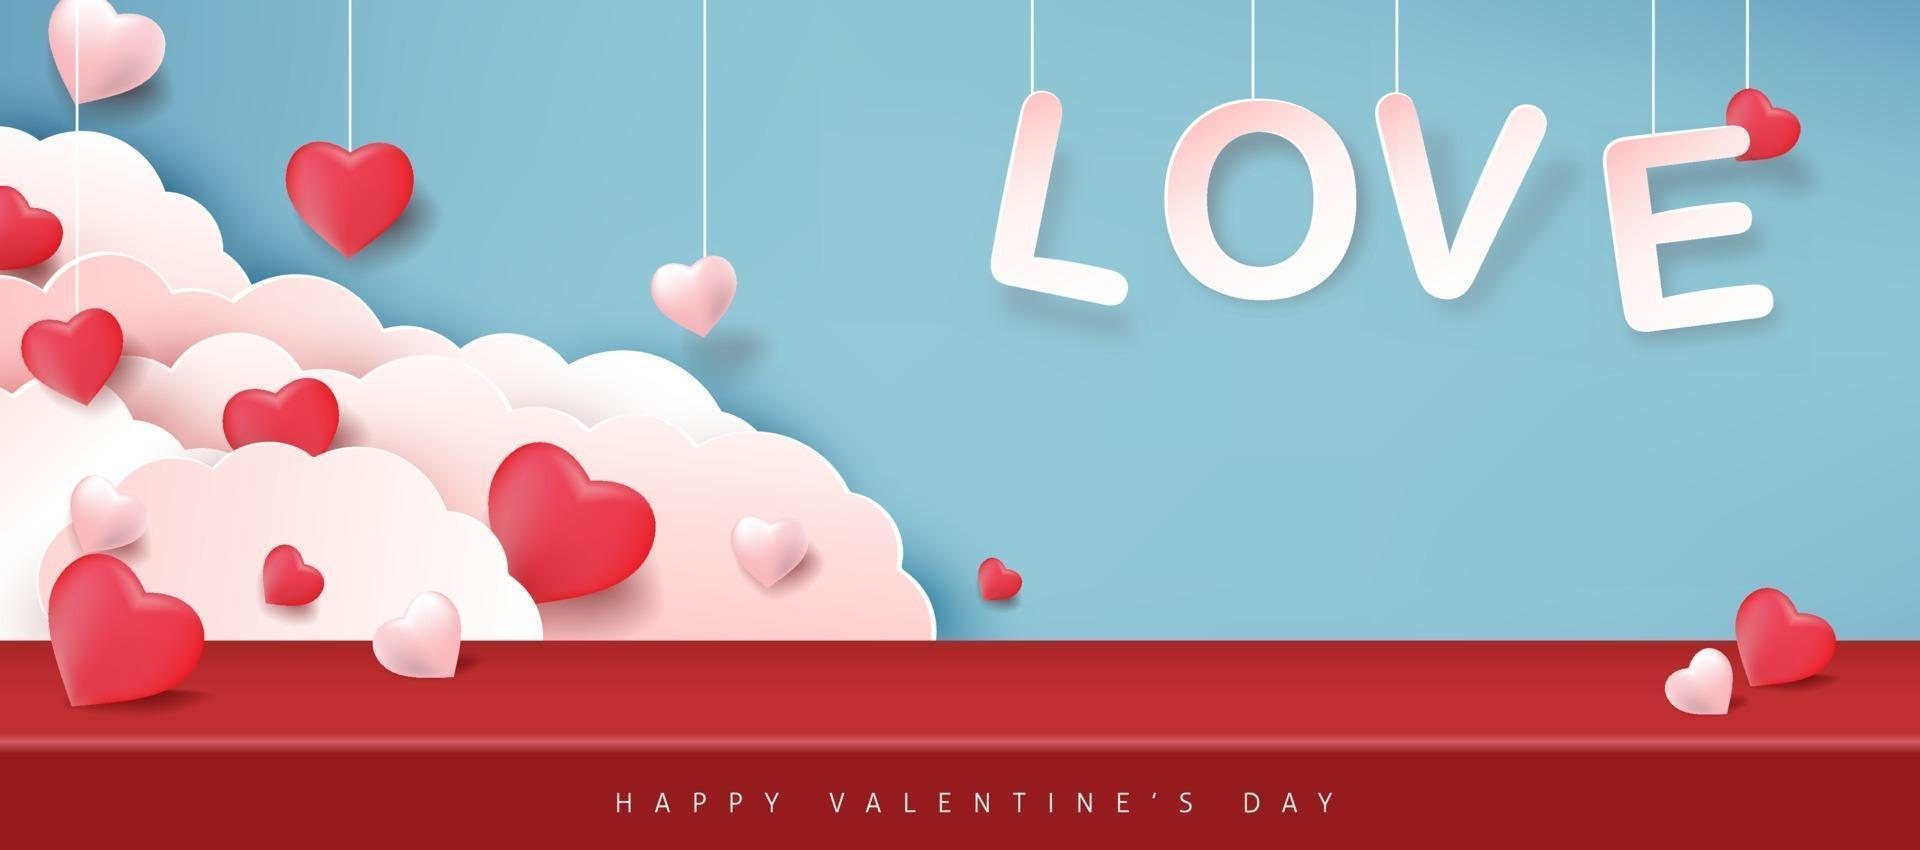 Valentine's day background with hanging love text, hearts and clouds vector